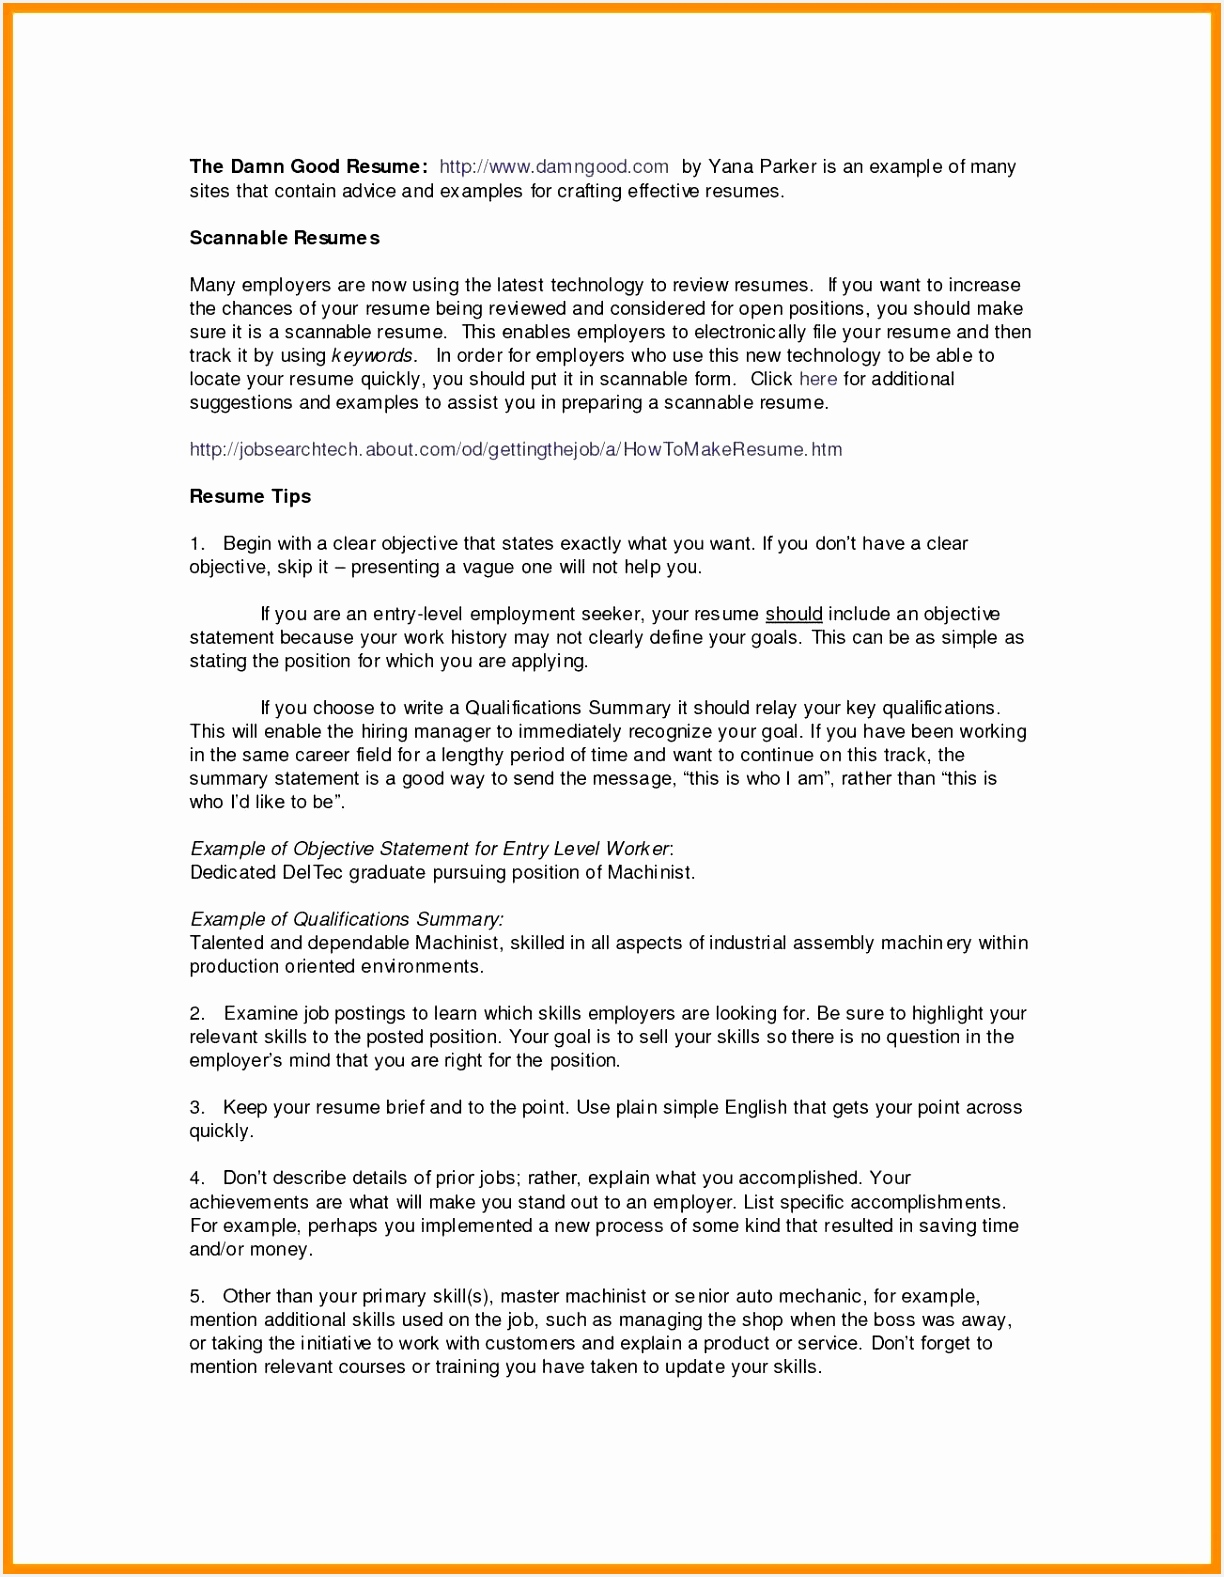 Mainframe Developer Resume Examples 16 Mainframe Developer Resume Examples 15771224kbuzq